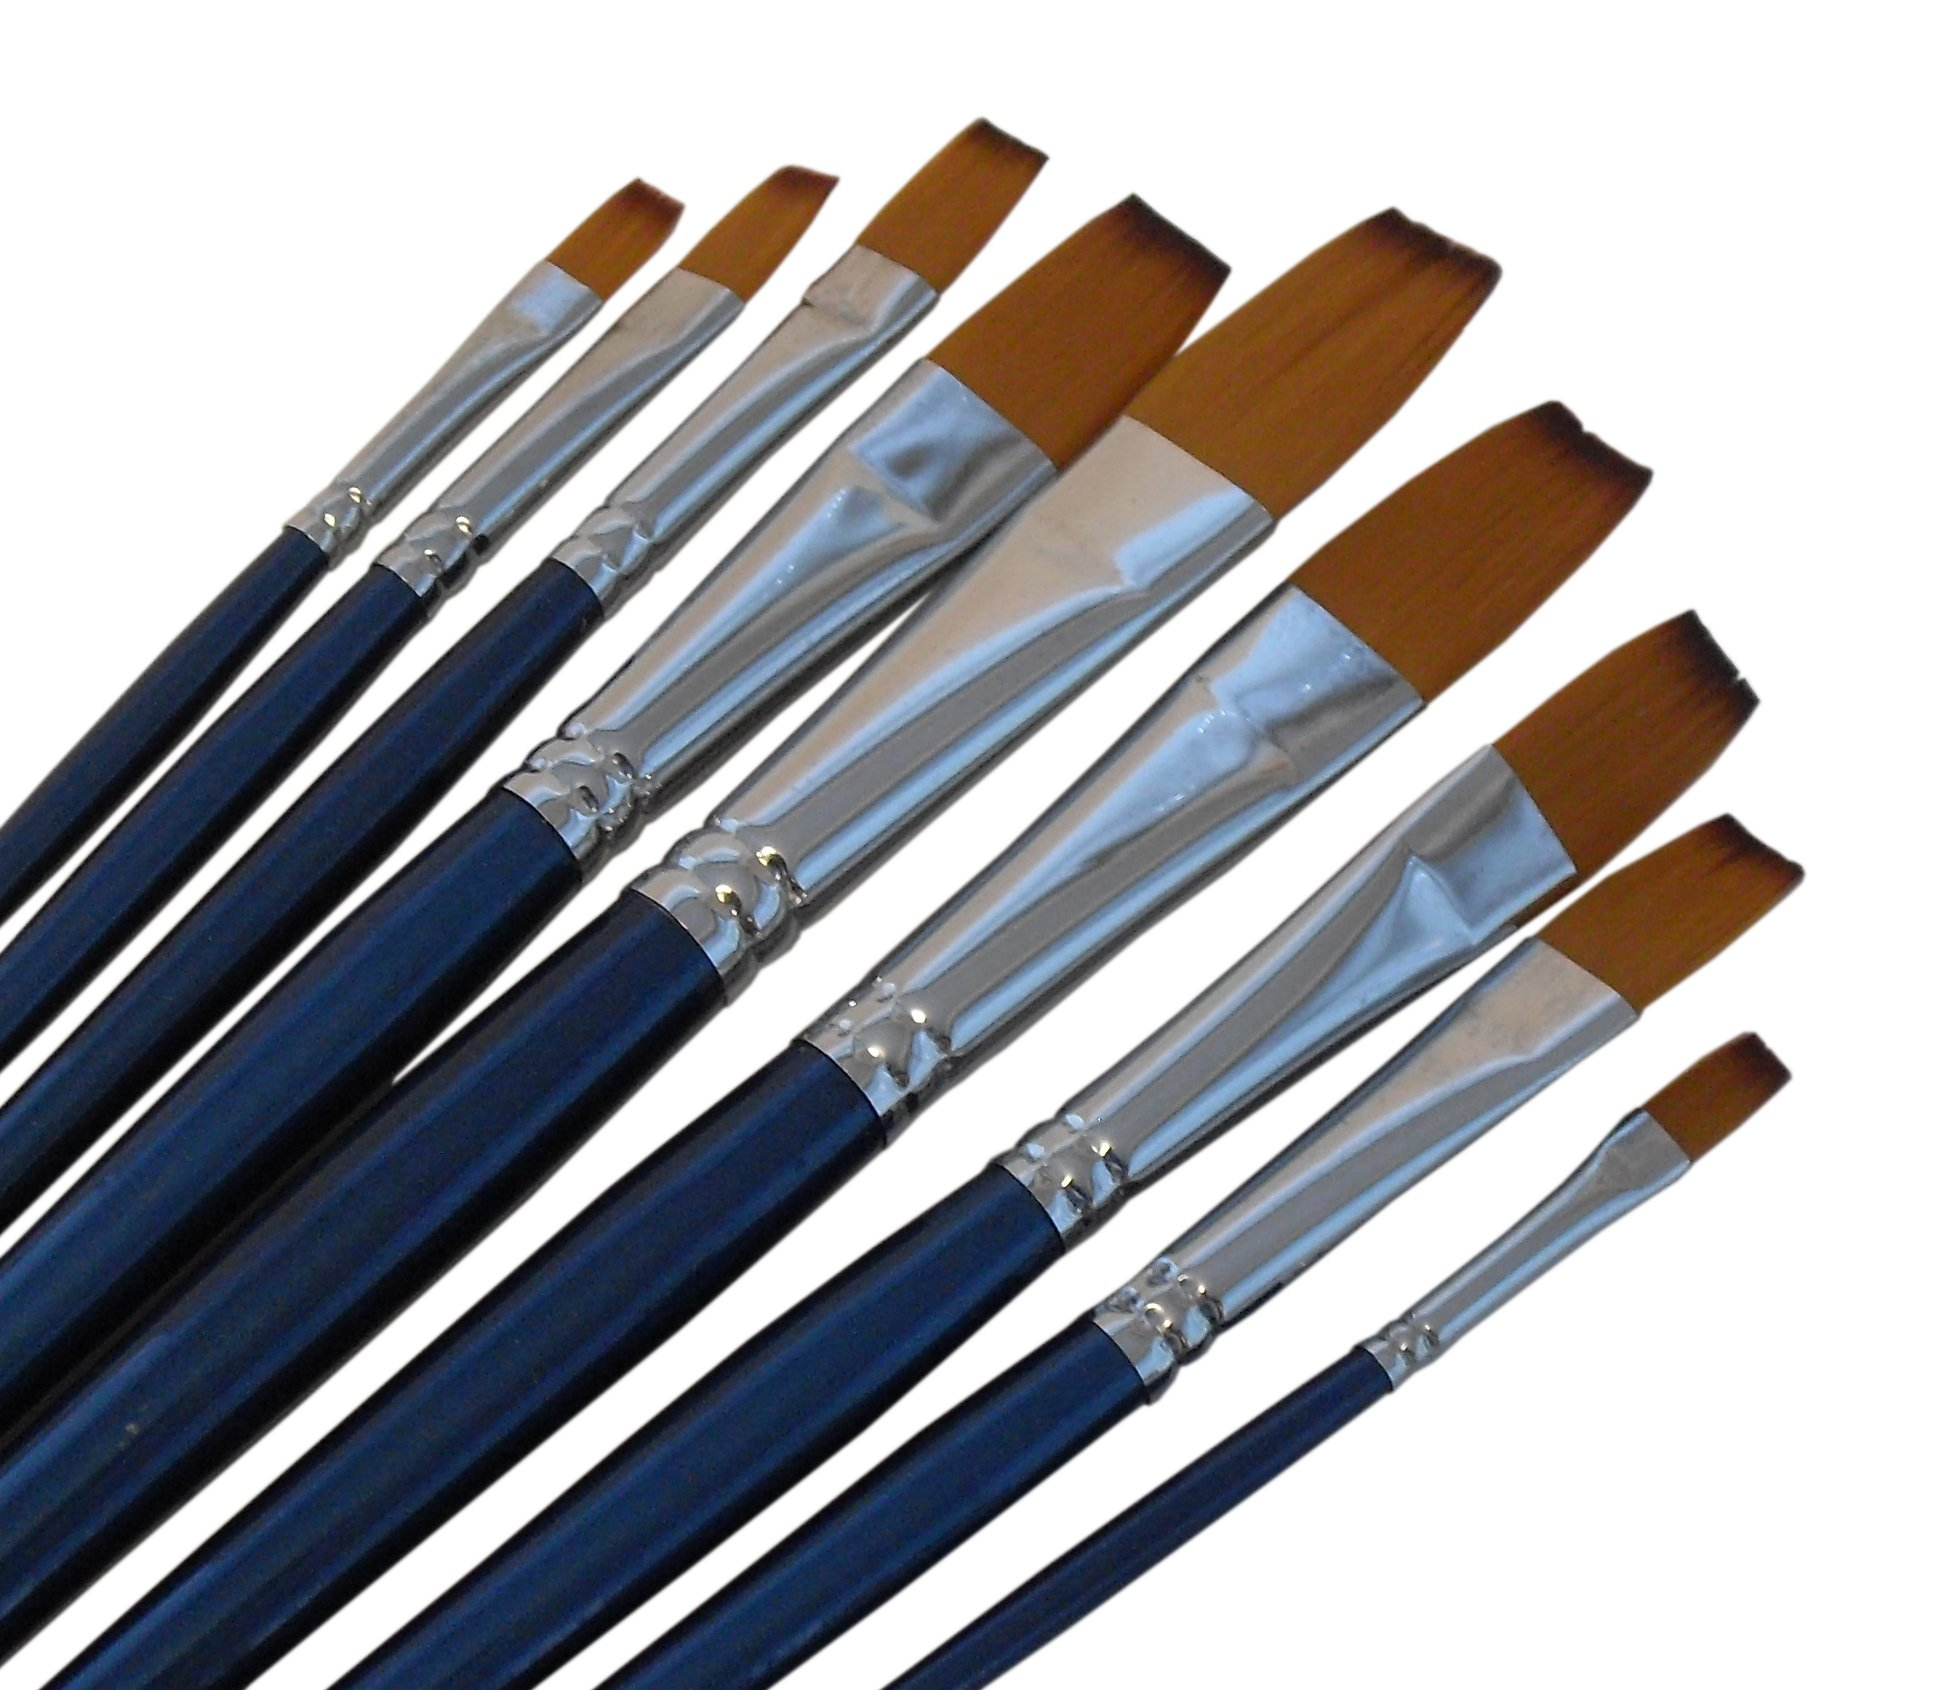 Artist Paint Brushes - F - Quality Black Tip, Golden Nylon, Long Handle, Flat Paint Brush Set - Ideal for Watercolor Painting and Gouache Painting, and Equally Useful for Acrylic and Oil Painting by Magic Touches Making Life Magical